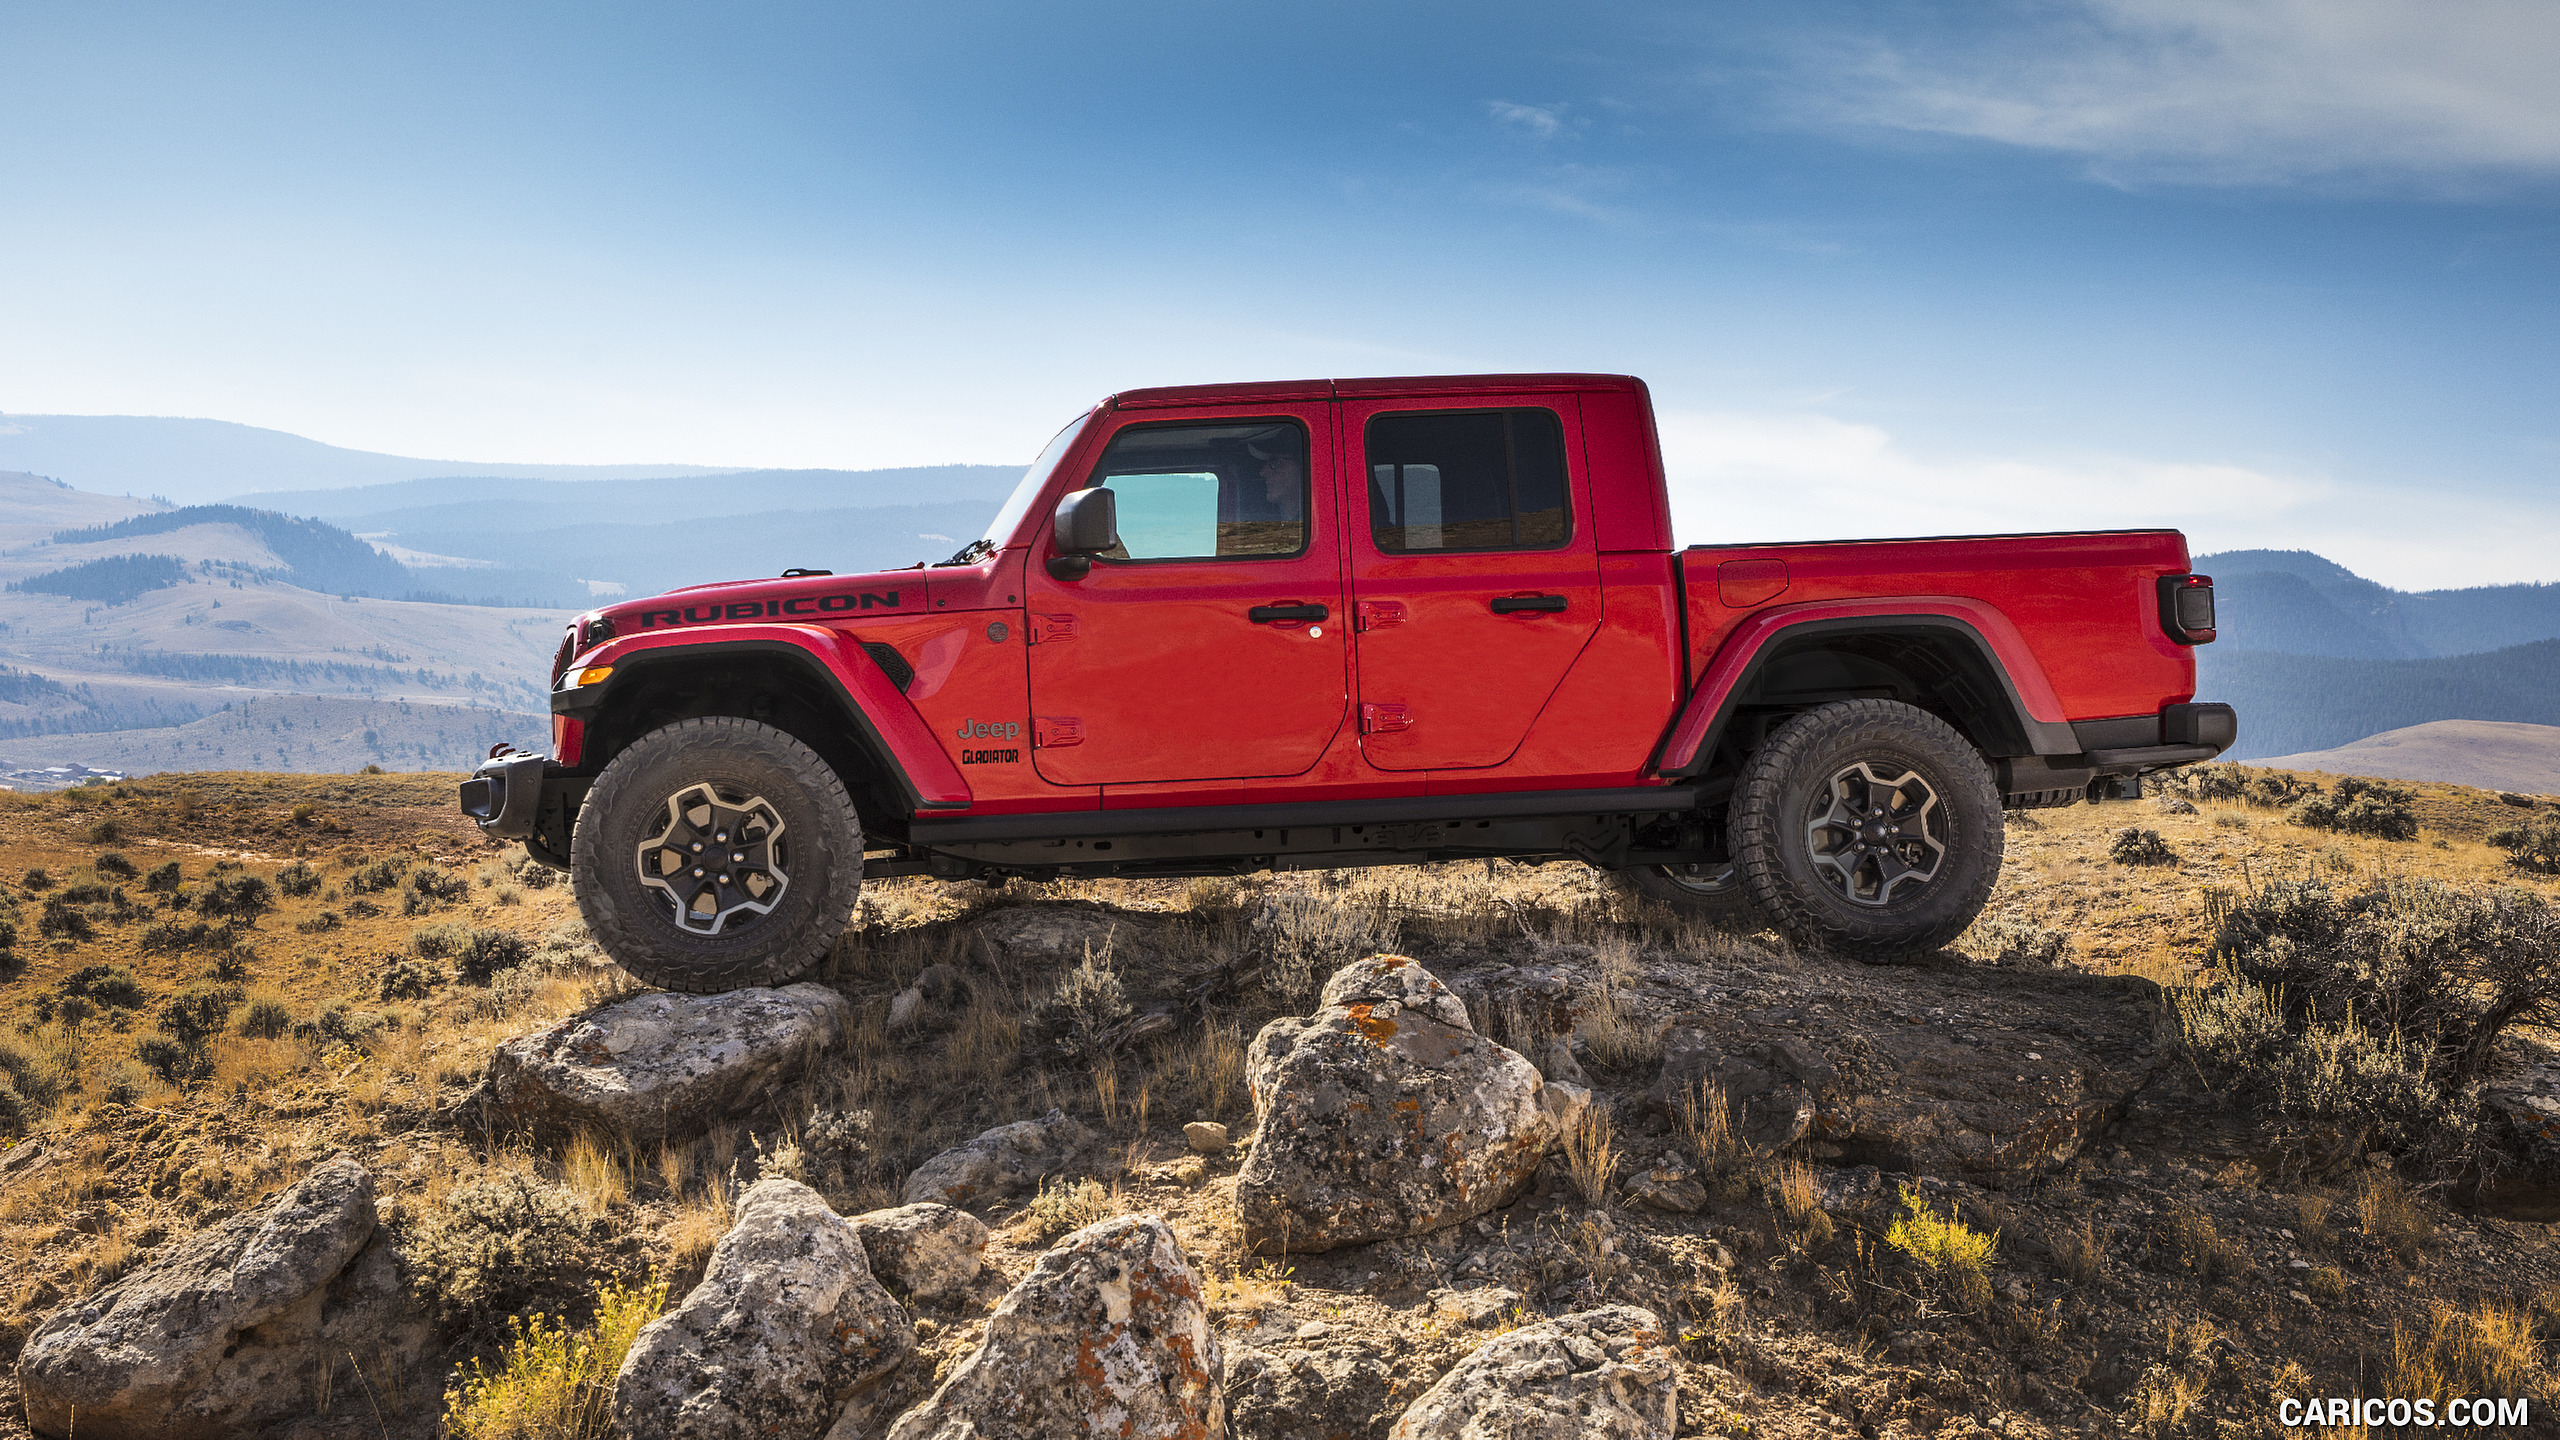 2020 Jeep Gladiator Rubicon   Side HD Wallpaper 119 2560x1440